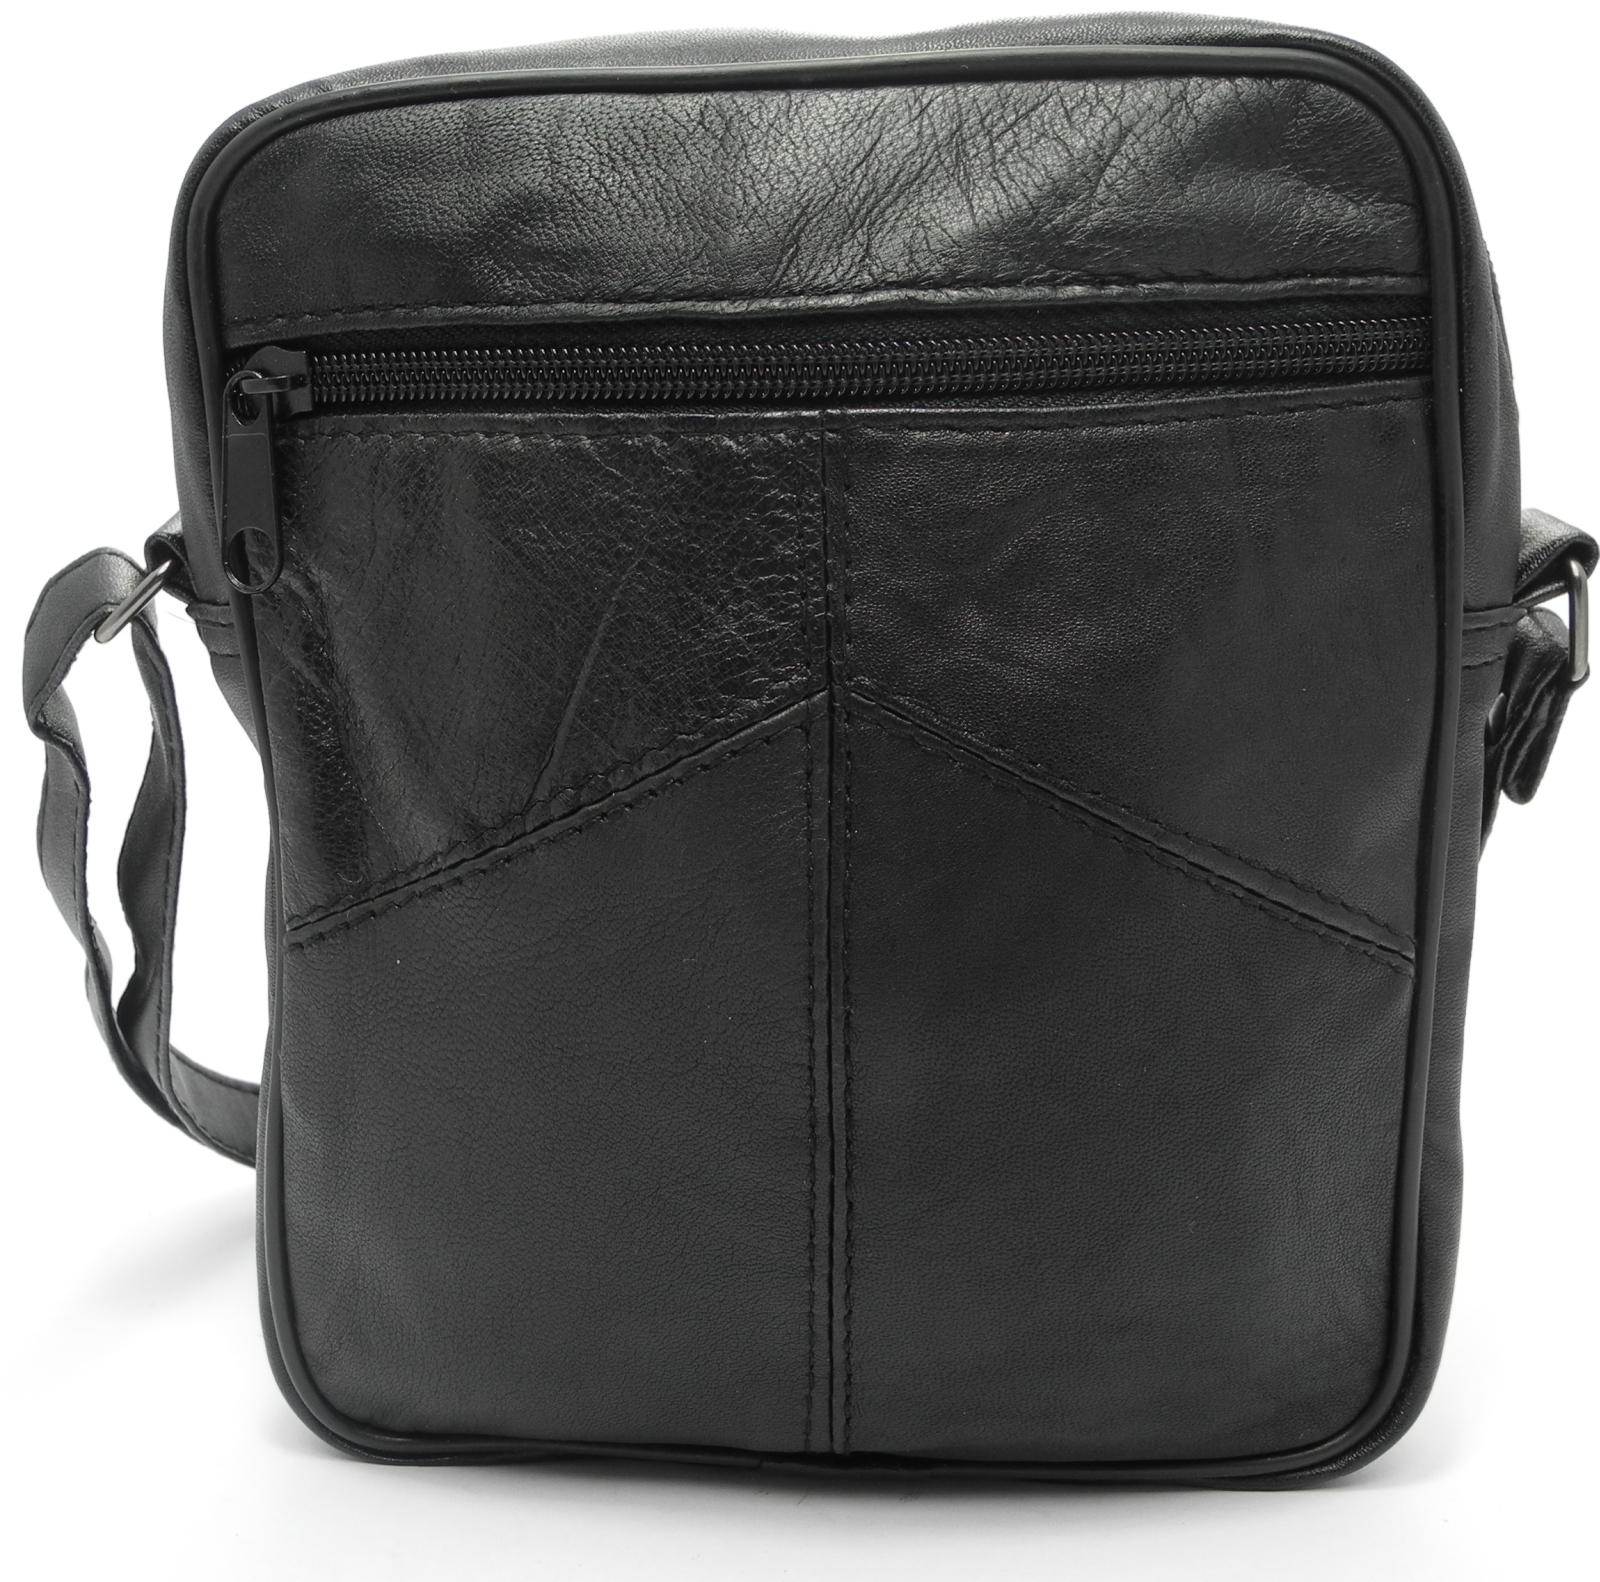 Unisex-Mens-Leather-Handbag-Small-Shoulder-Man-Bag-Manbag-BLACK-BROWN